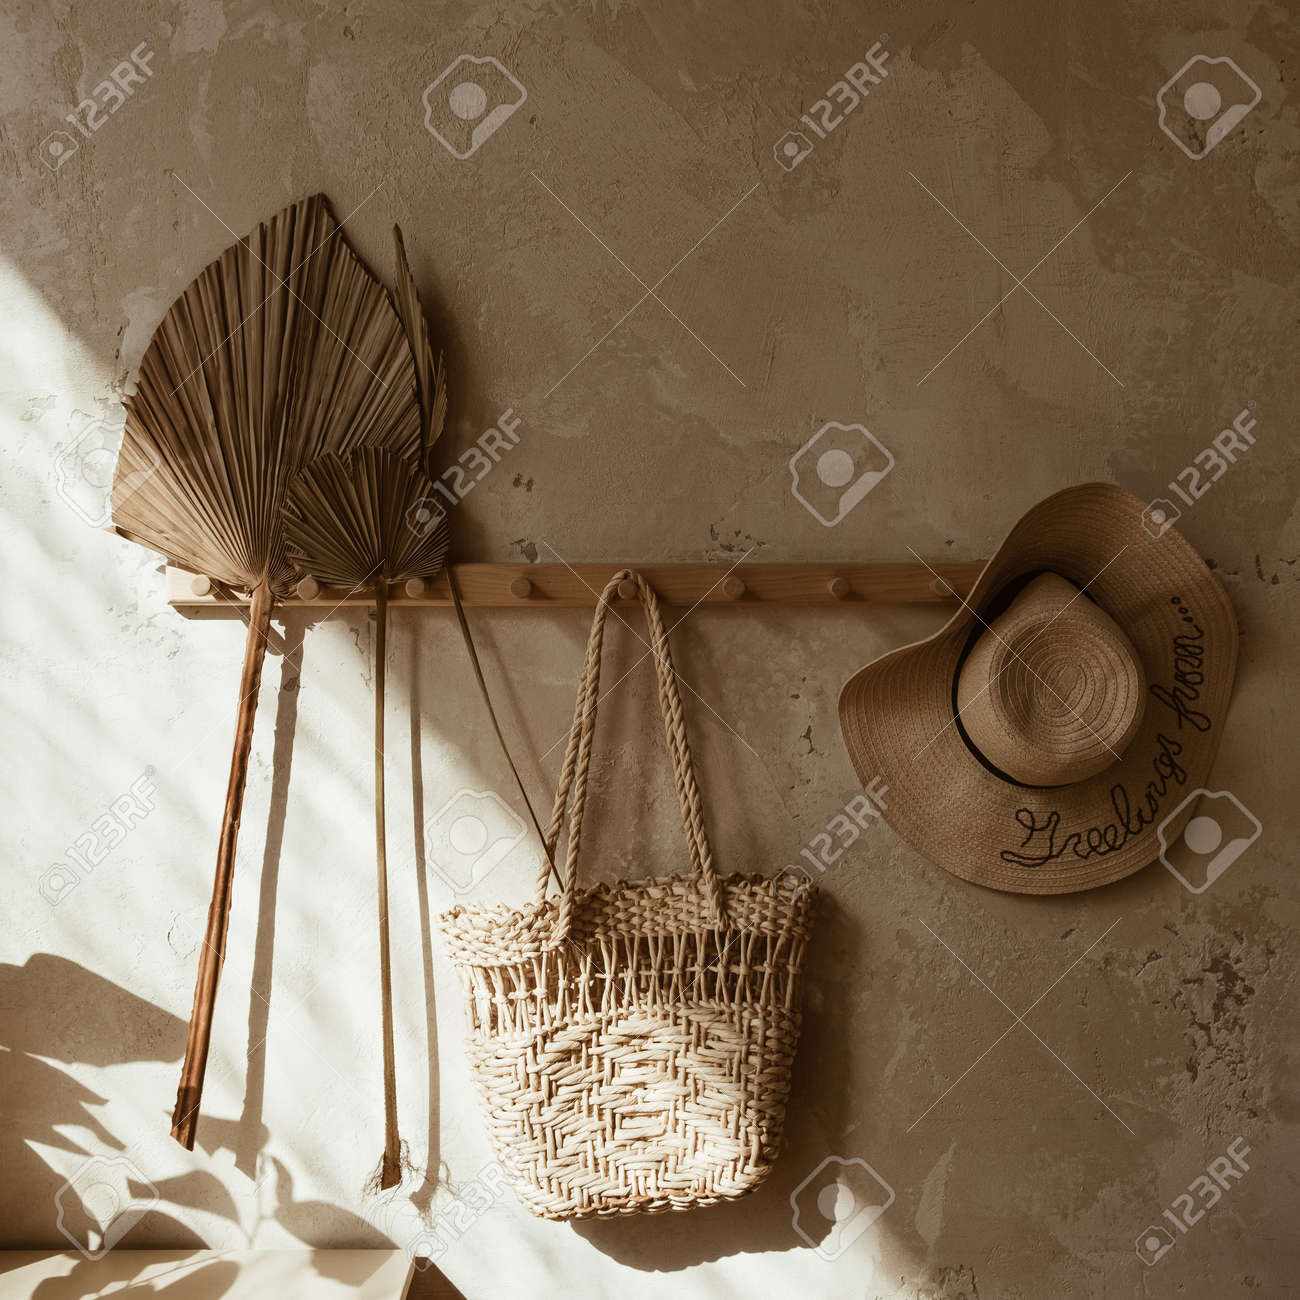 Boho Style Modern Home Interior Design Straw And Rattan Decorations Stock Photo Picture And Royalty Free Image Image 158671298